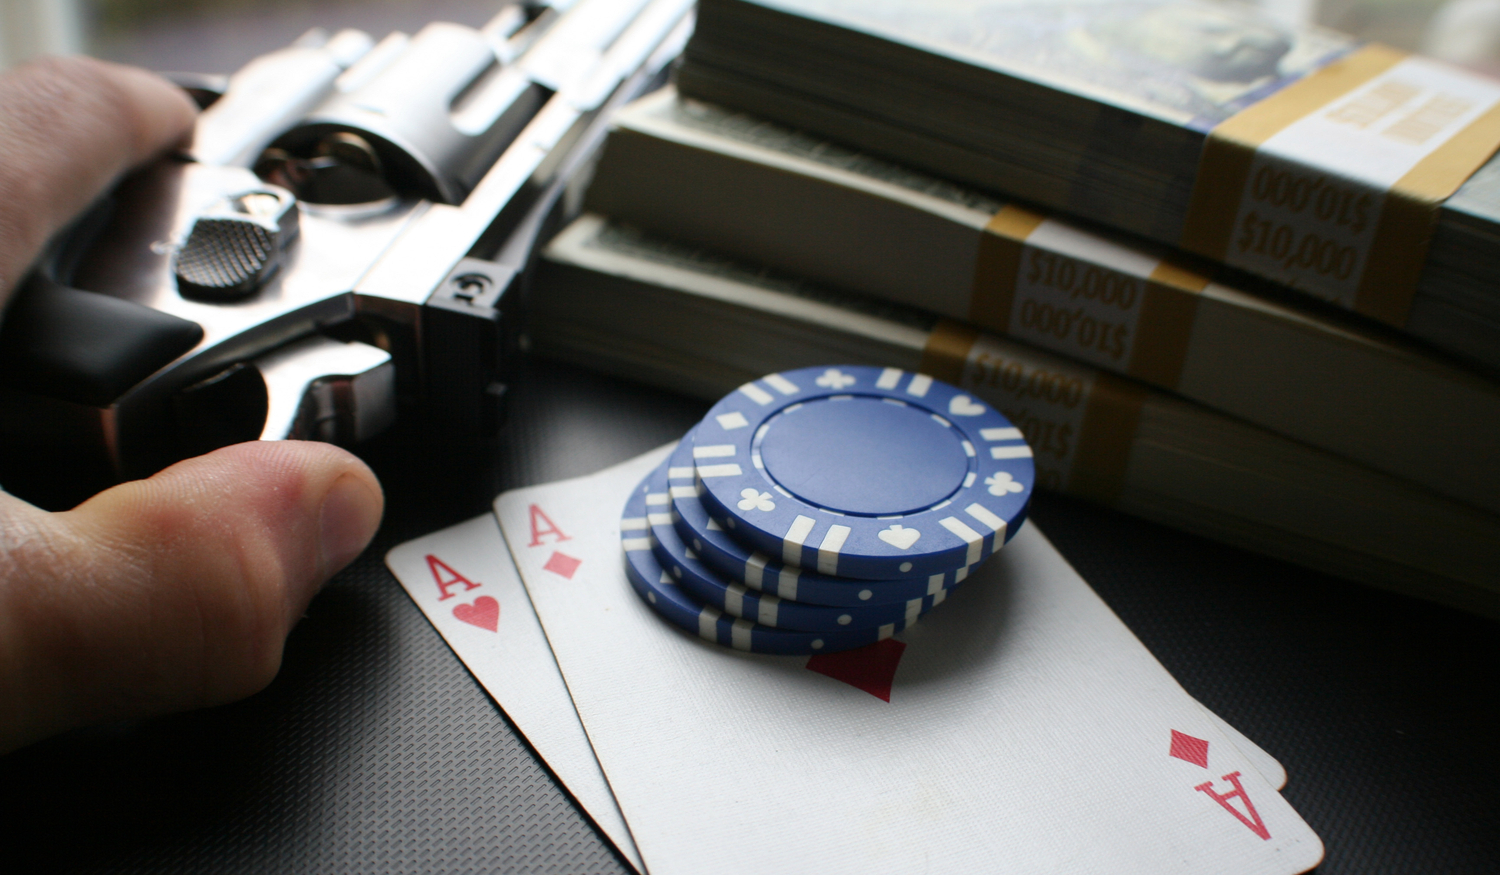 gun, stack of money, and poker chips and playing cards